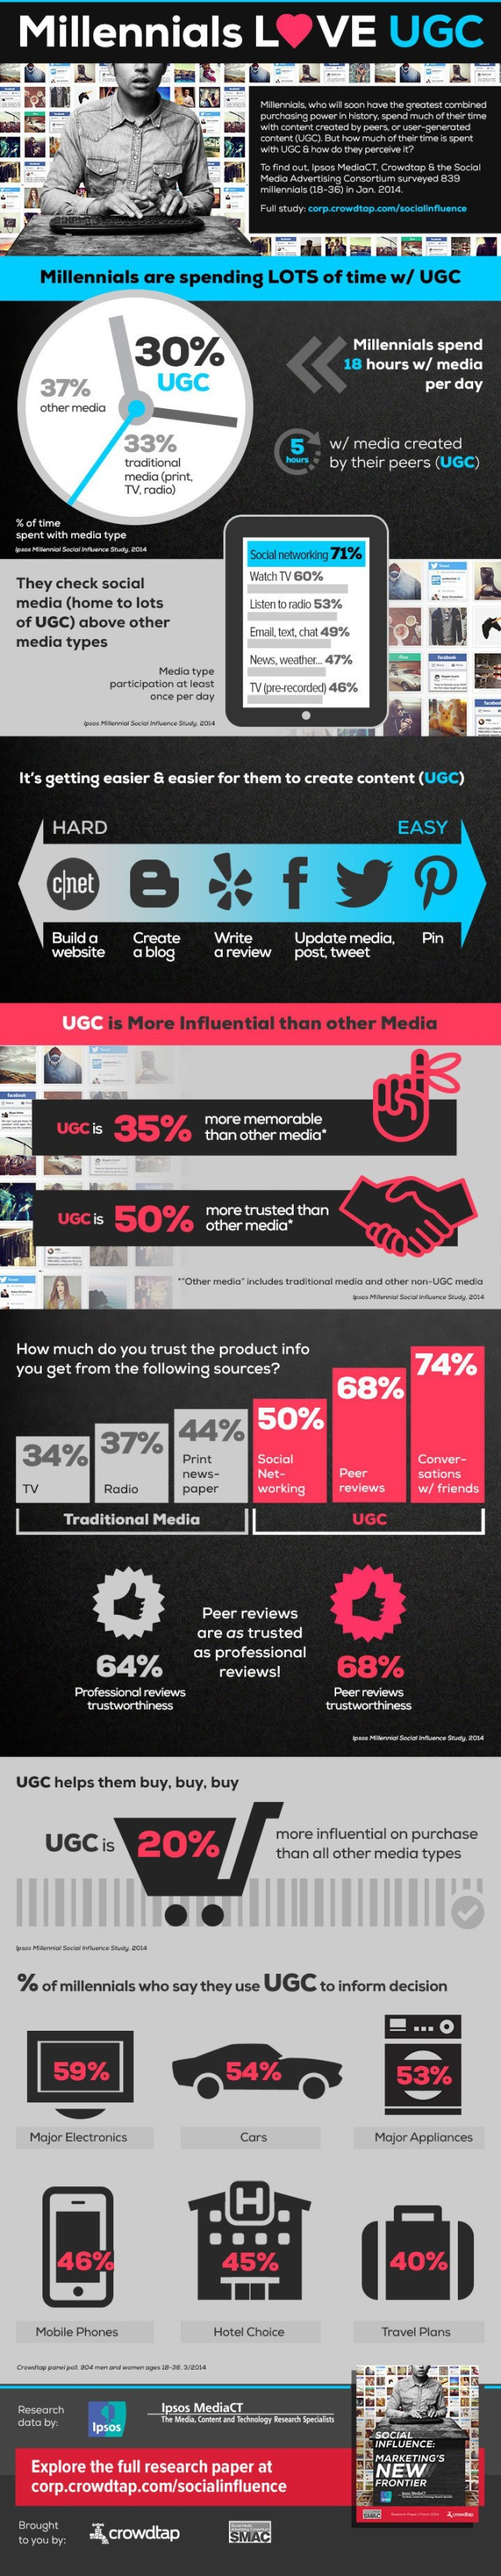 How to encourage Millennials to engage more with your brand?